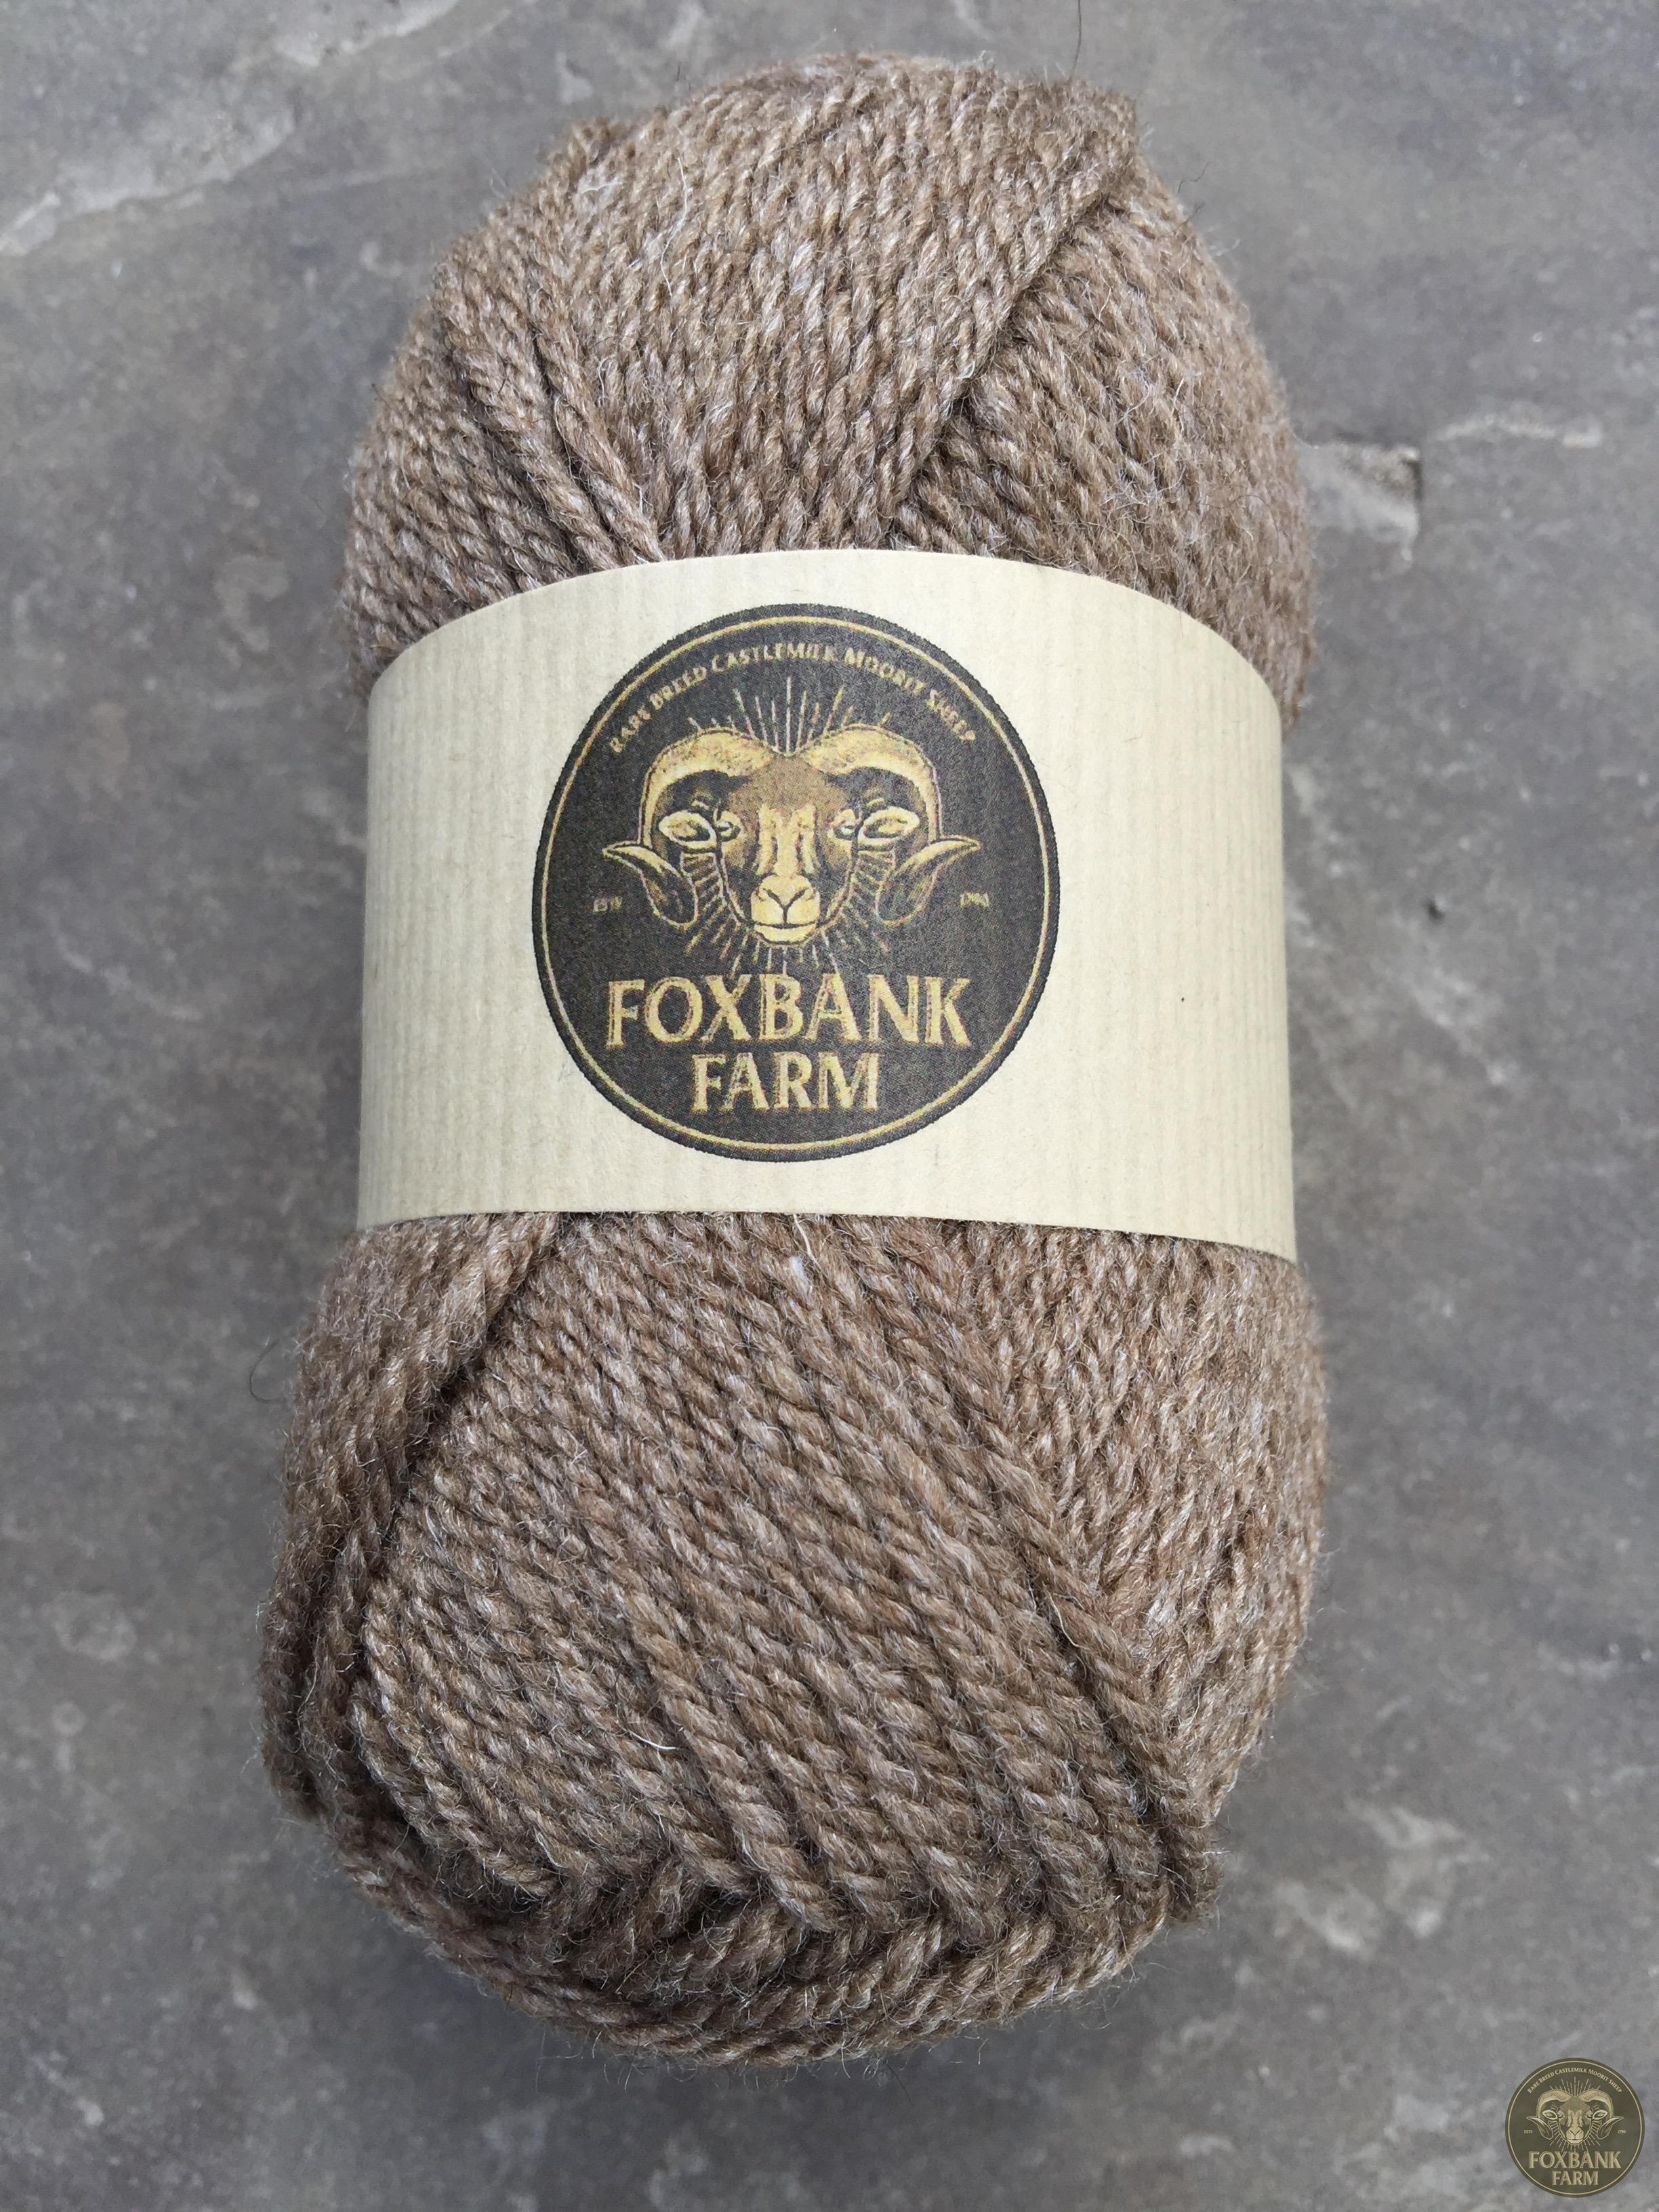 Foxbank Farm luxury Castlemilk/Tussah Silk worsted spun blend.